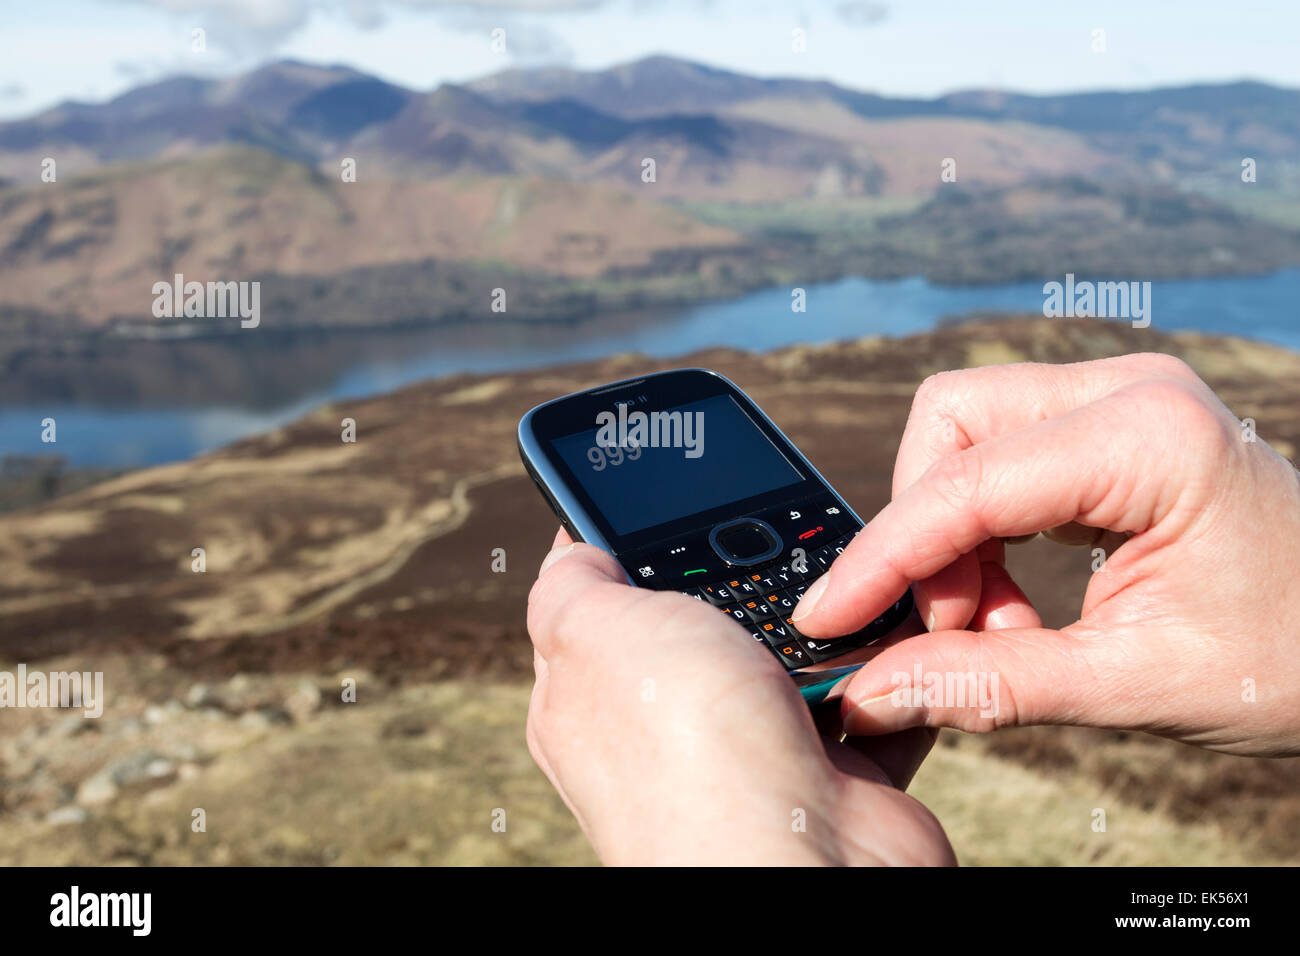 Concept Image of Mobile Phone Being Used to Dial 999 in the Mountains of the Lake District Cumbria UK - Stock Image